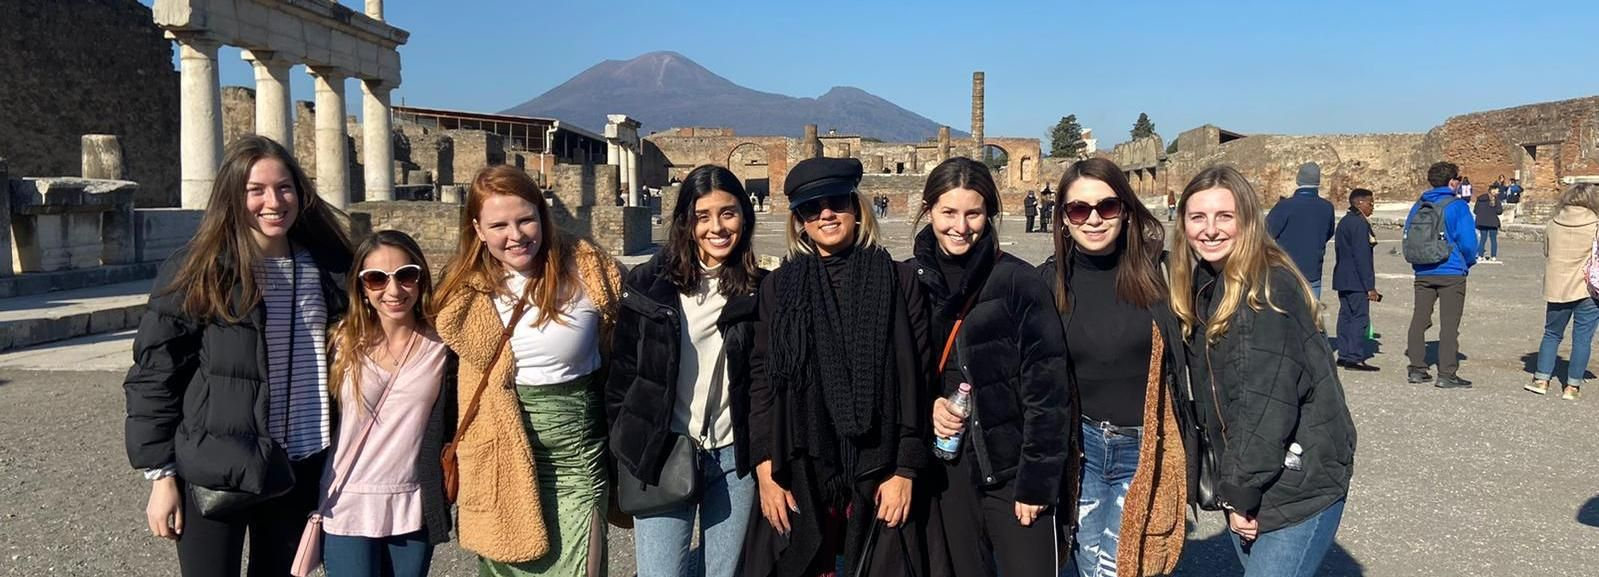 From Rome: Pompeii All-Inclusive Tour with Live Guide